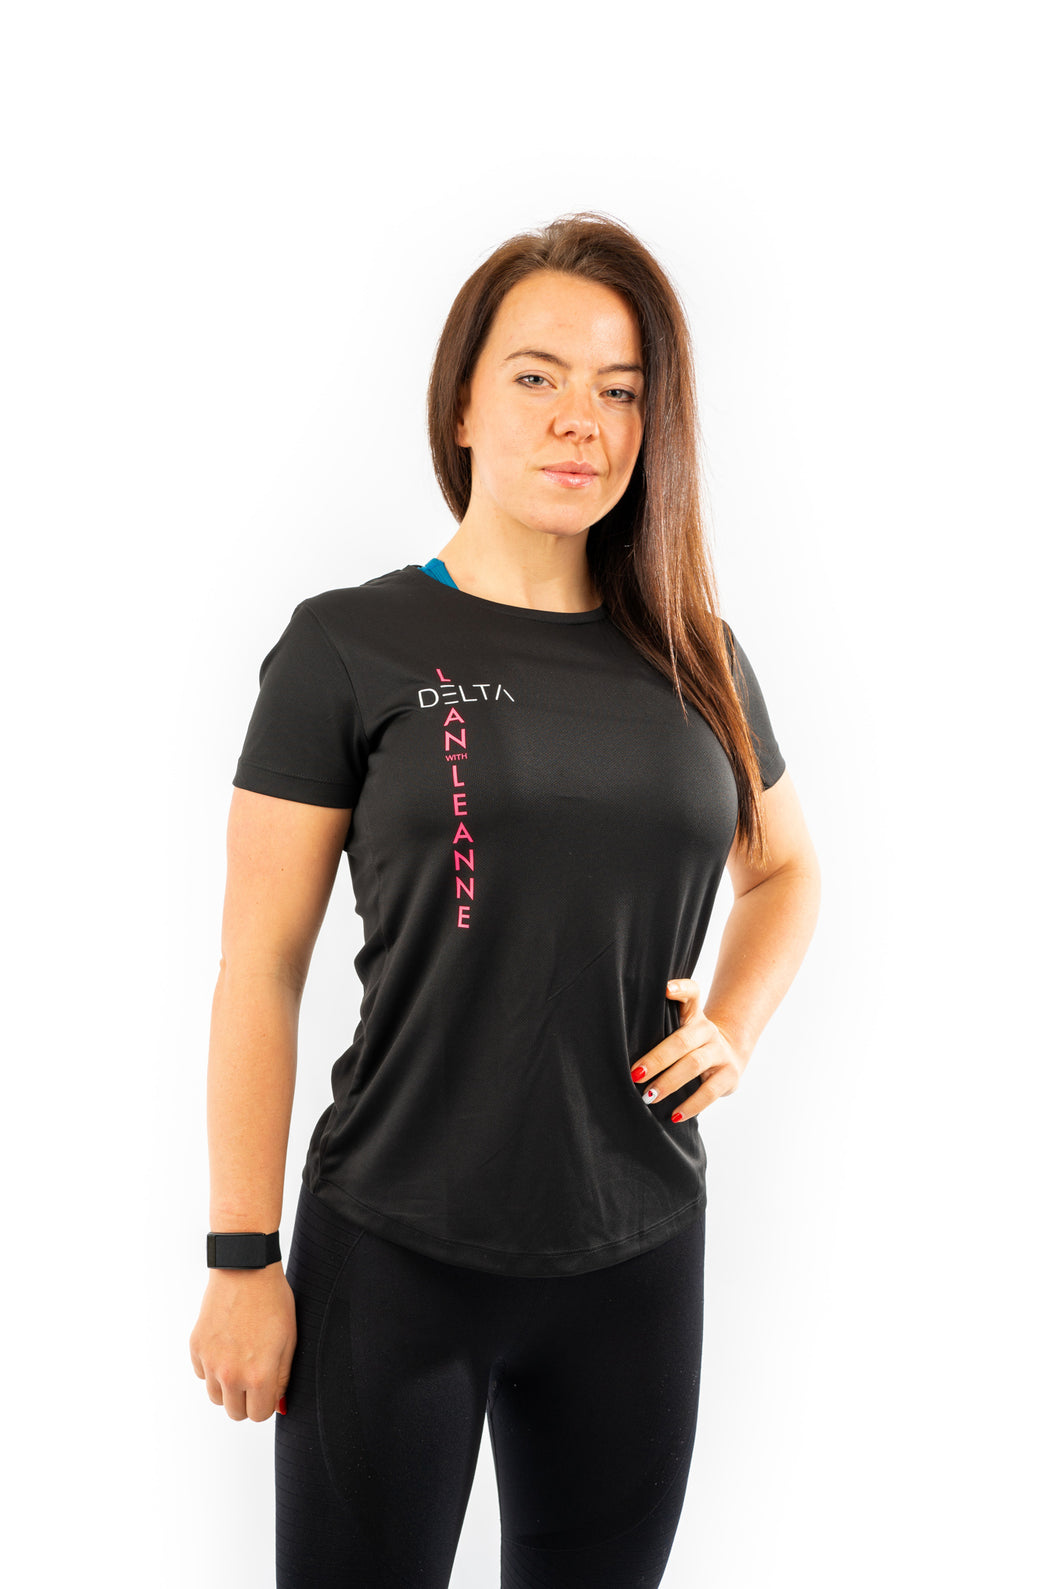 LWL x DELTA Performance Tee - DELTA Fitness Apparel